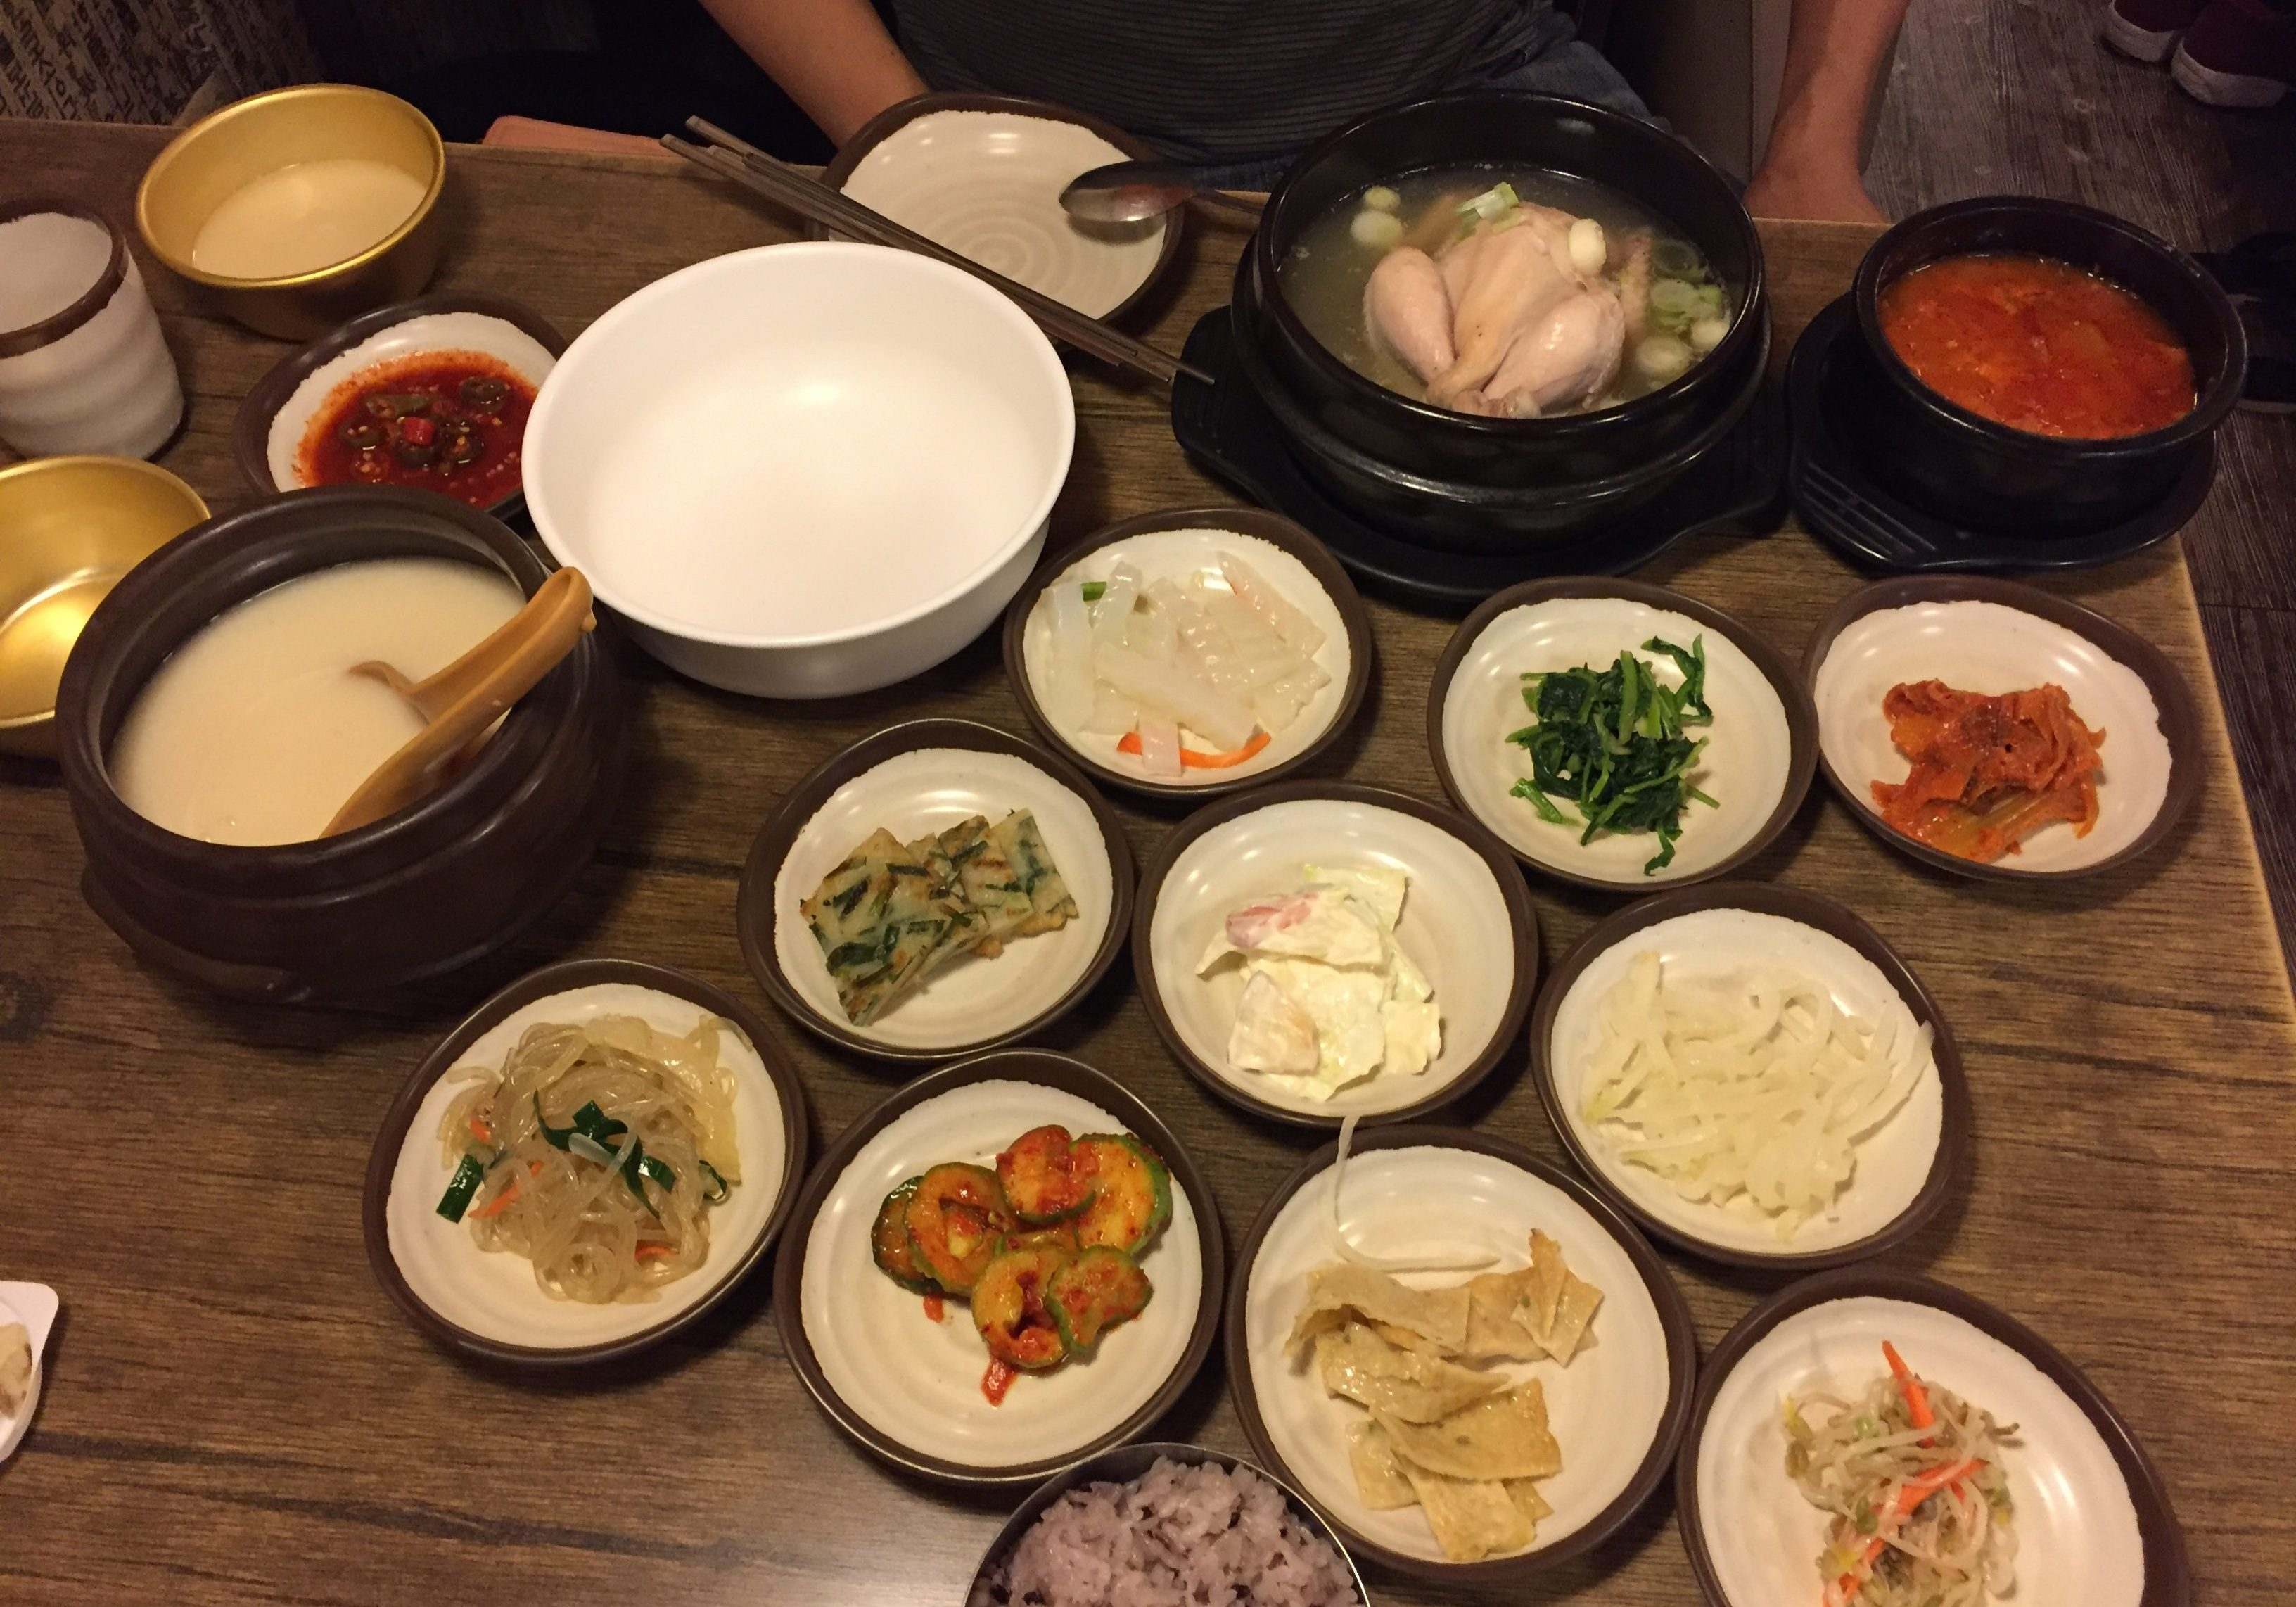 My Traditional Korean Meal! yay!